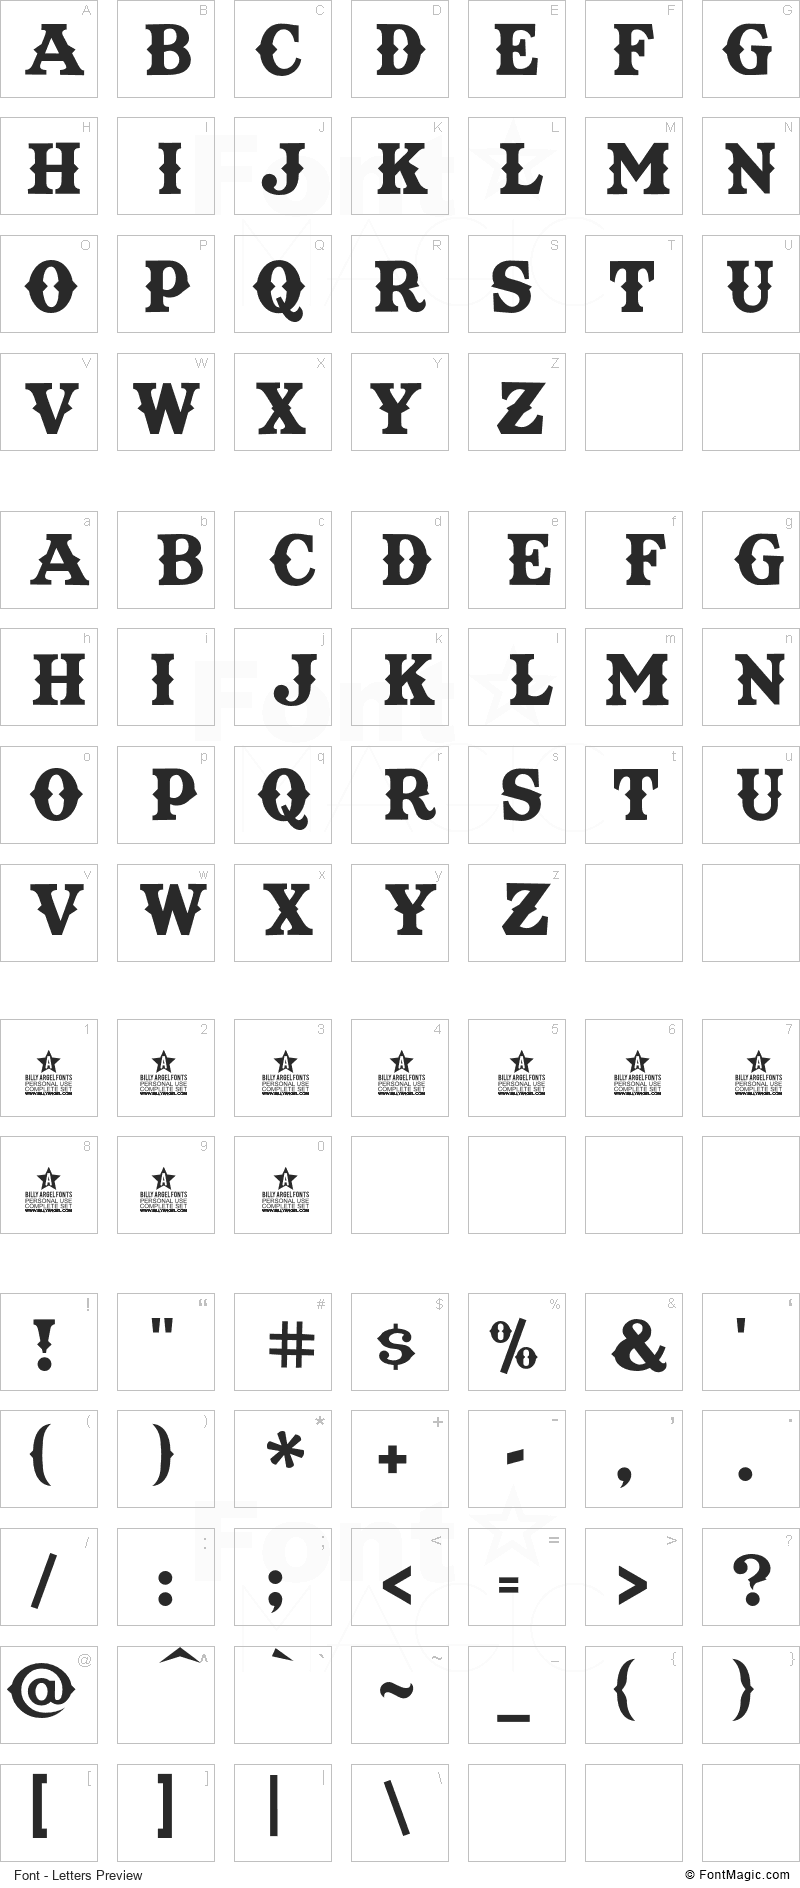 Texas Tango Font - All Latters Preview Chart